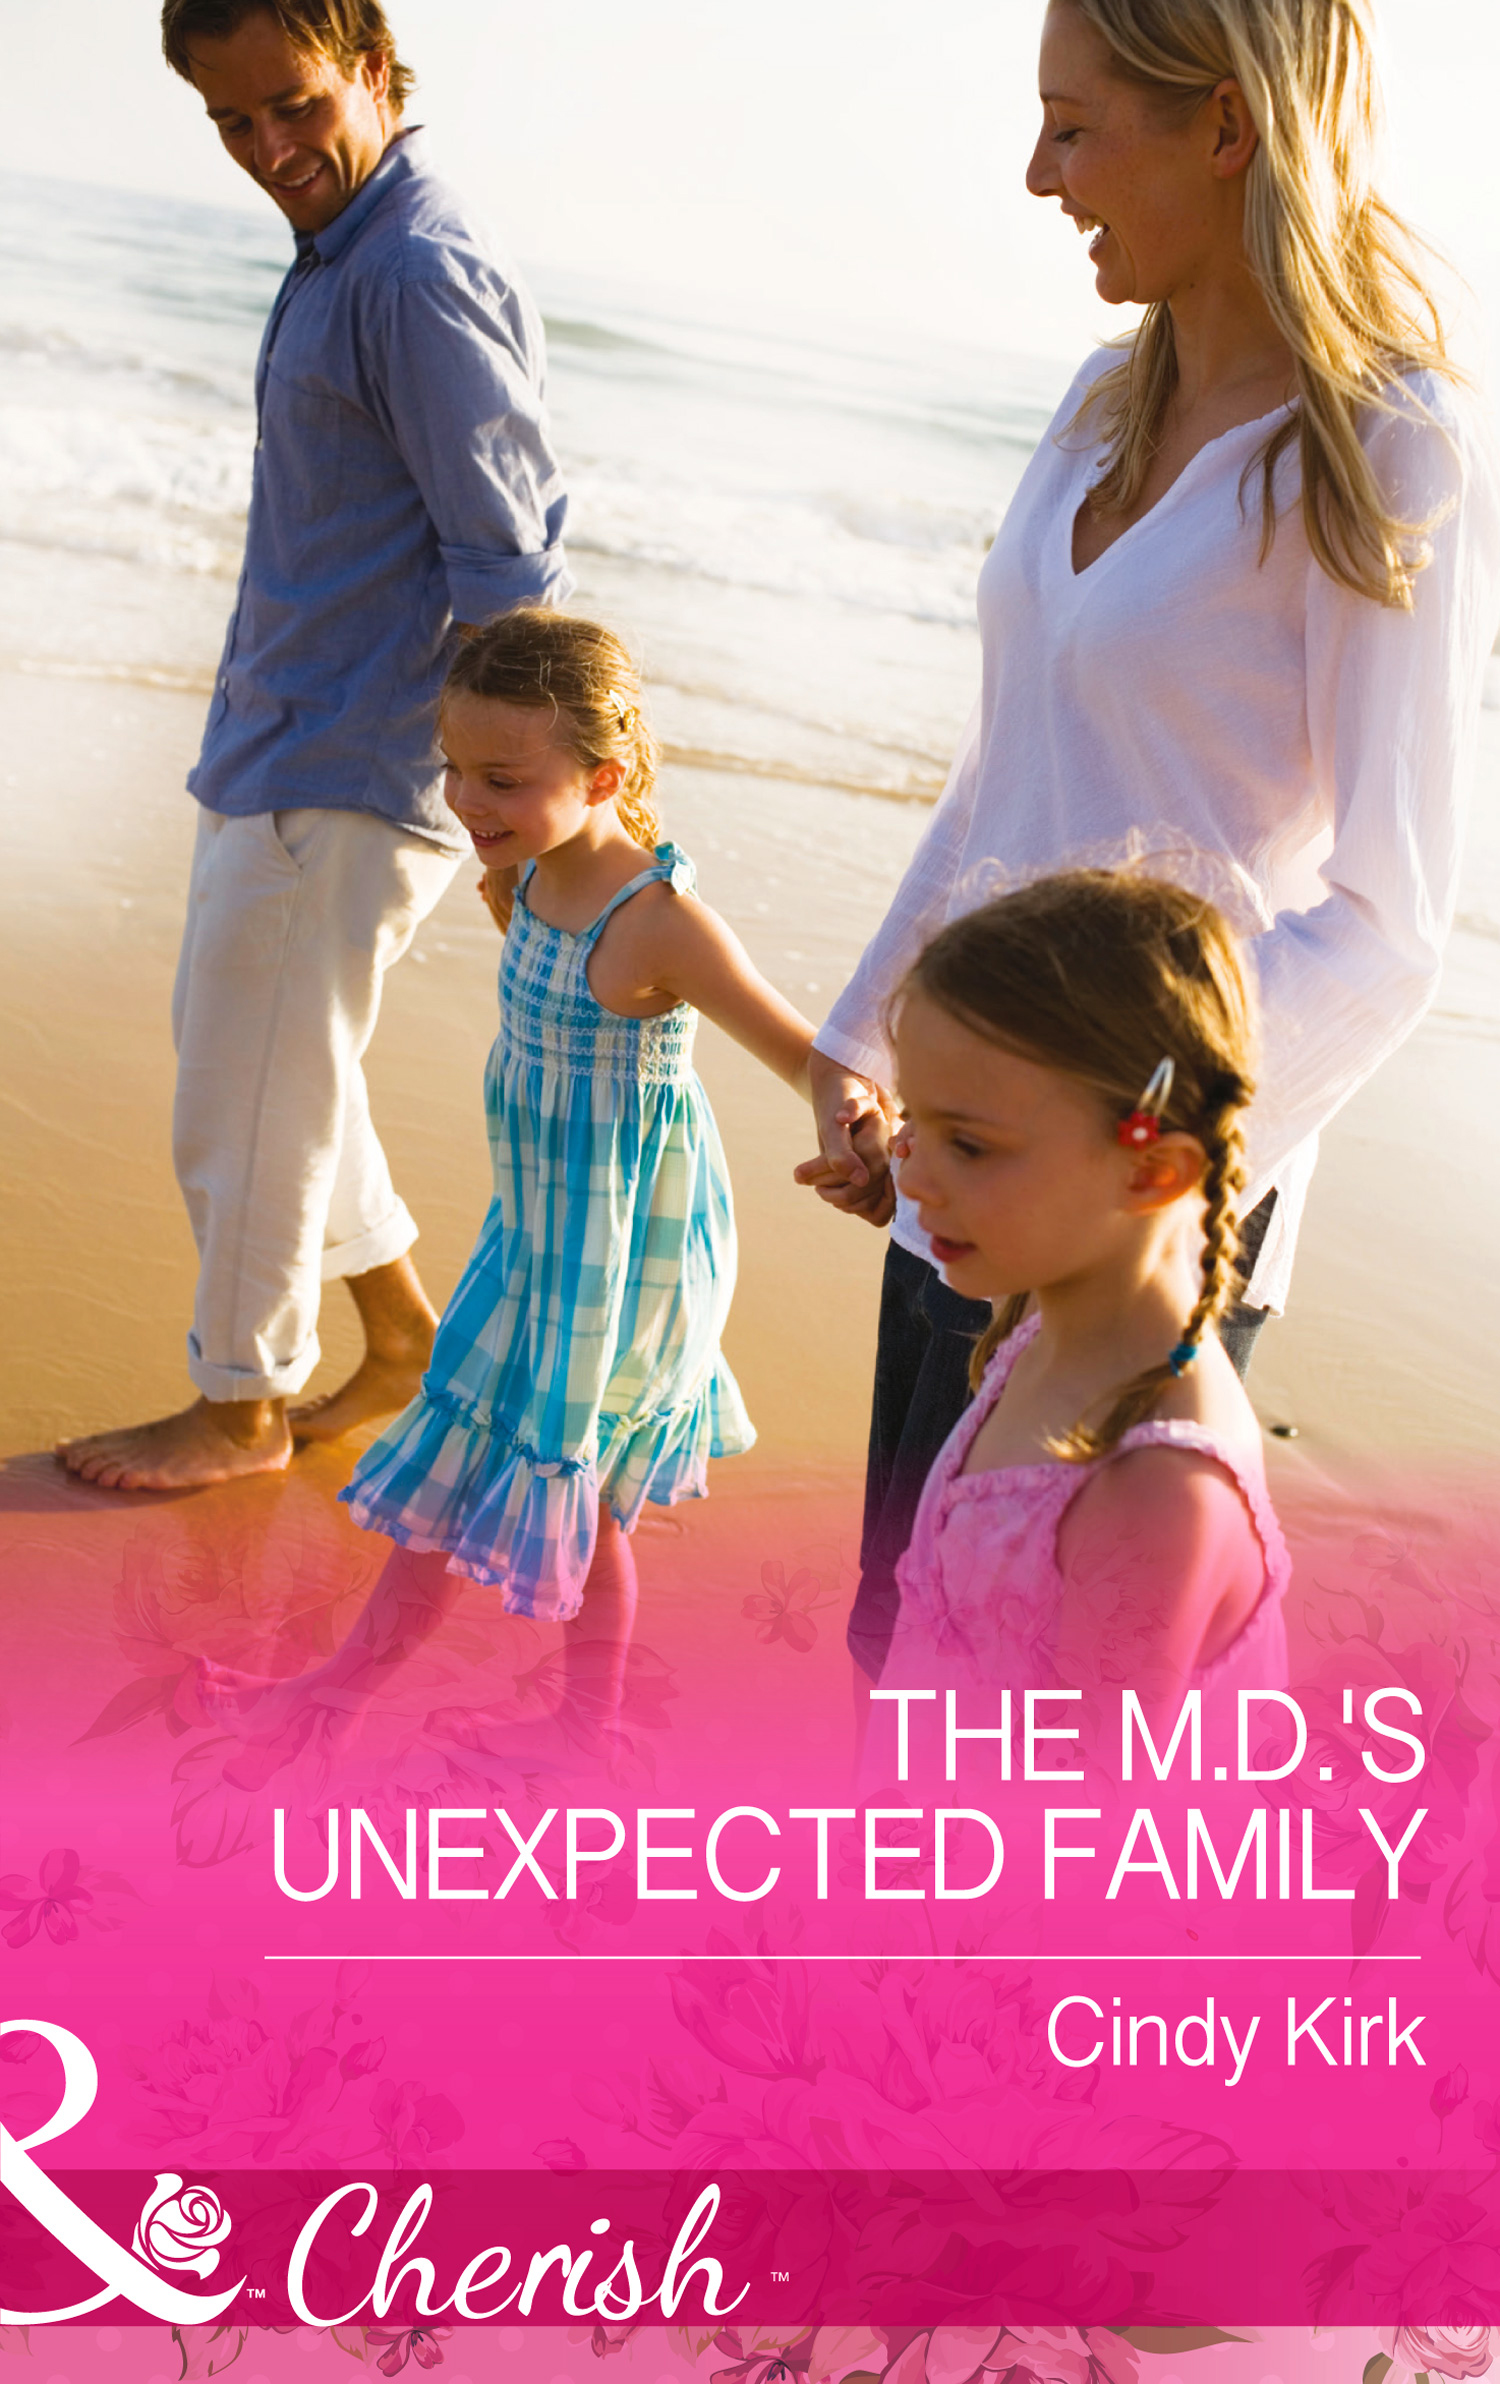 The M.D.'s Unexpected Family